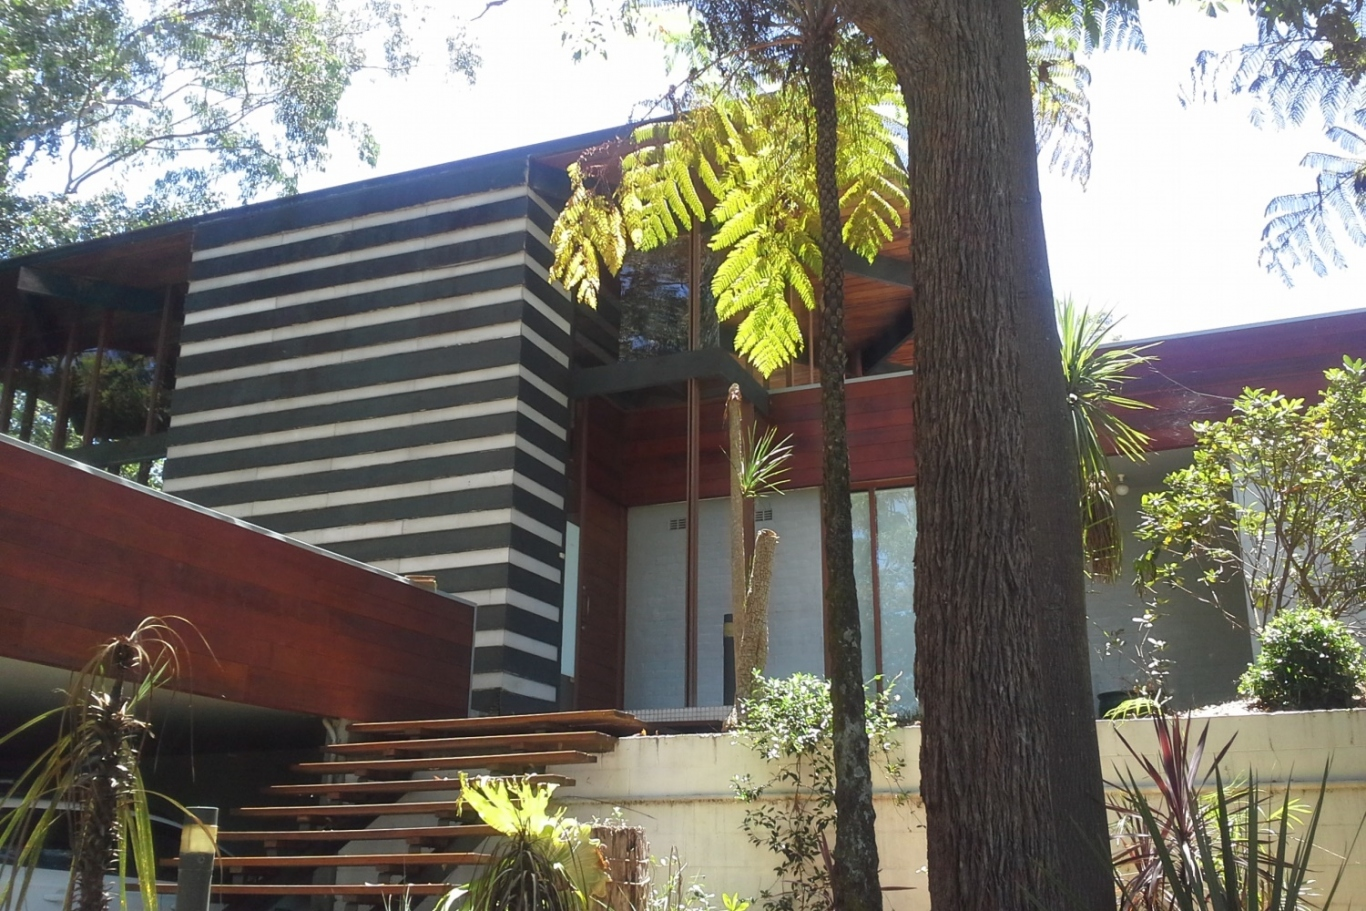 Image of the external steps and garden leading to Rippon House